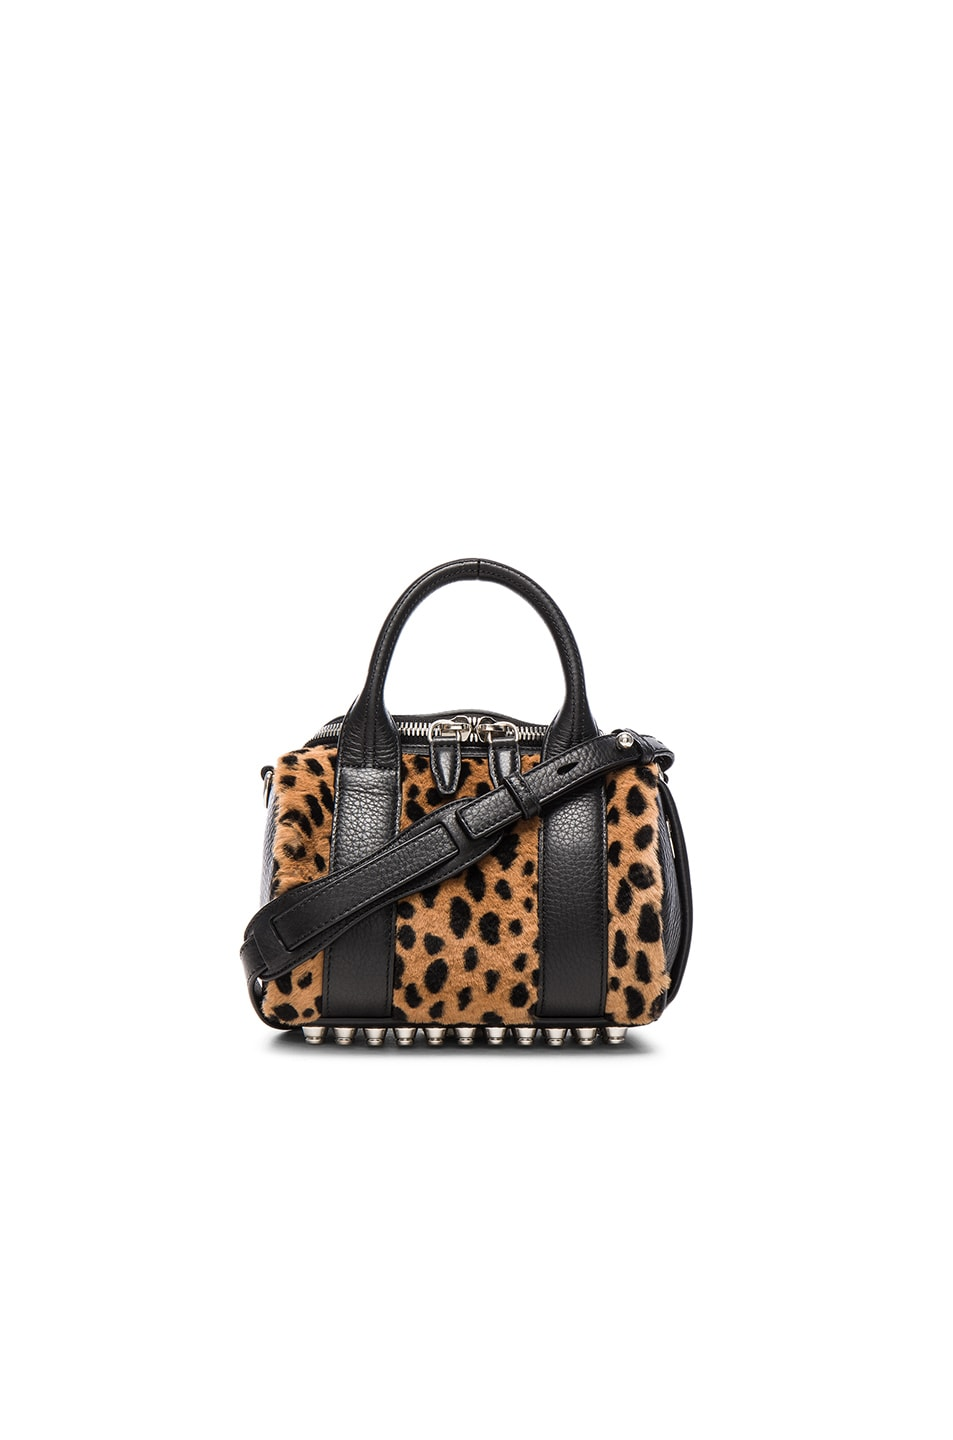 Image 1 of Alexander Wang Mini Rockie Bag in Cheetah